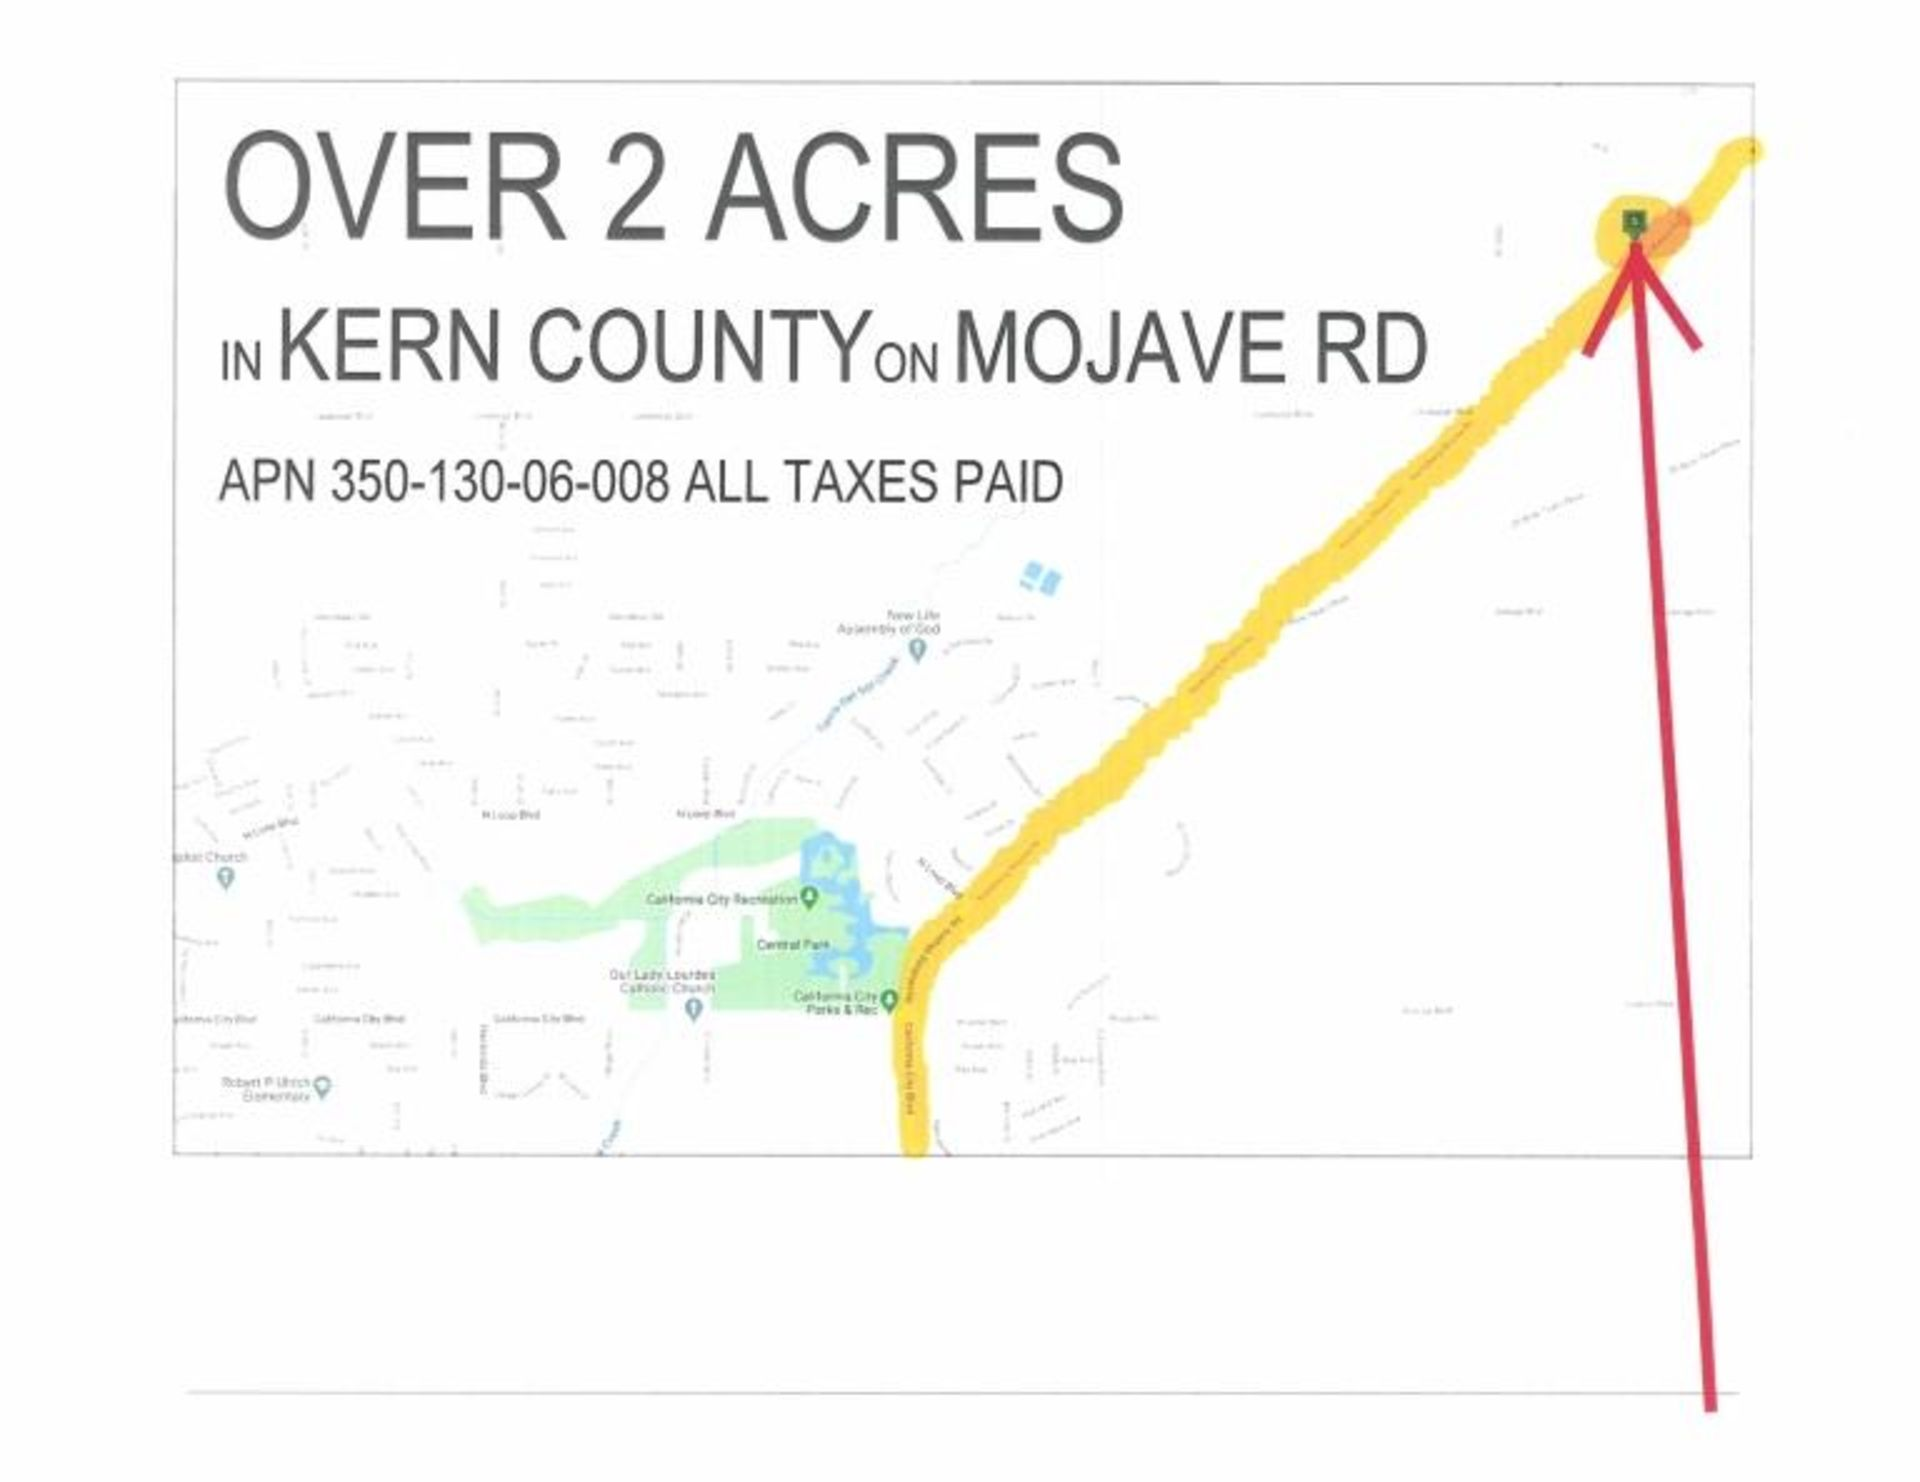 Lot 500 - 2.10 Acre Vacant Parcel, in California City,